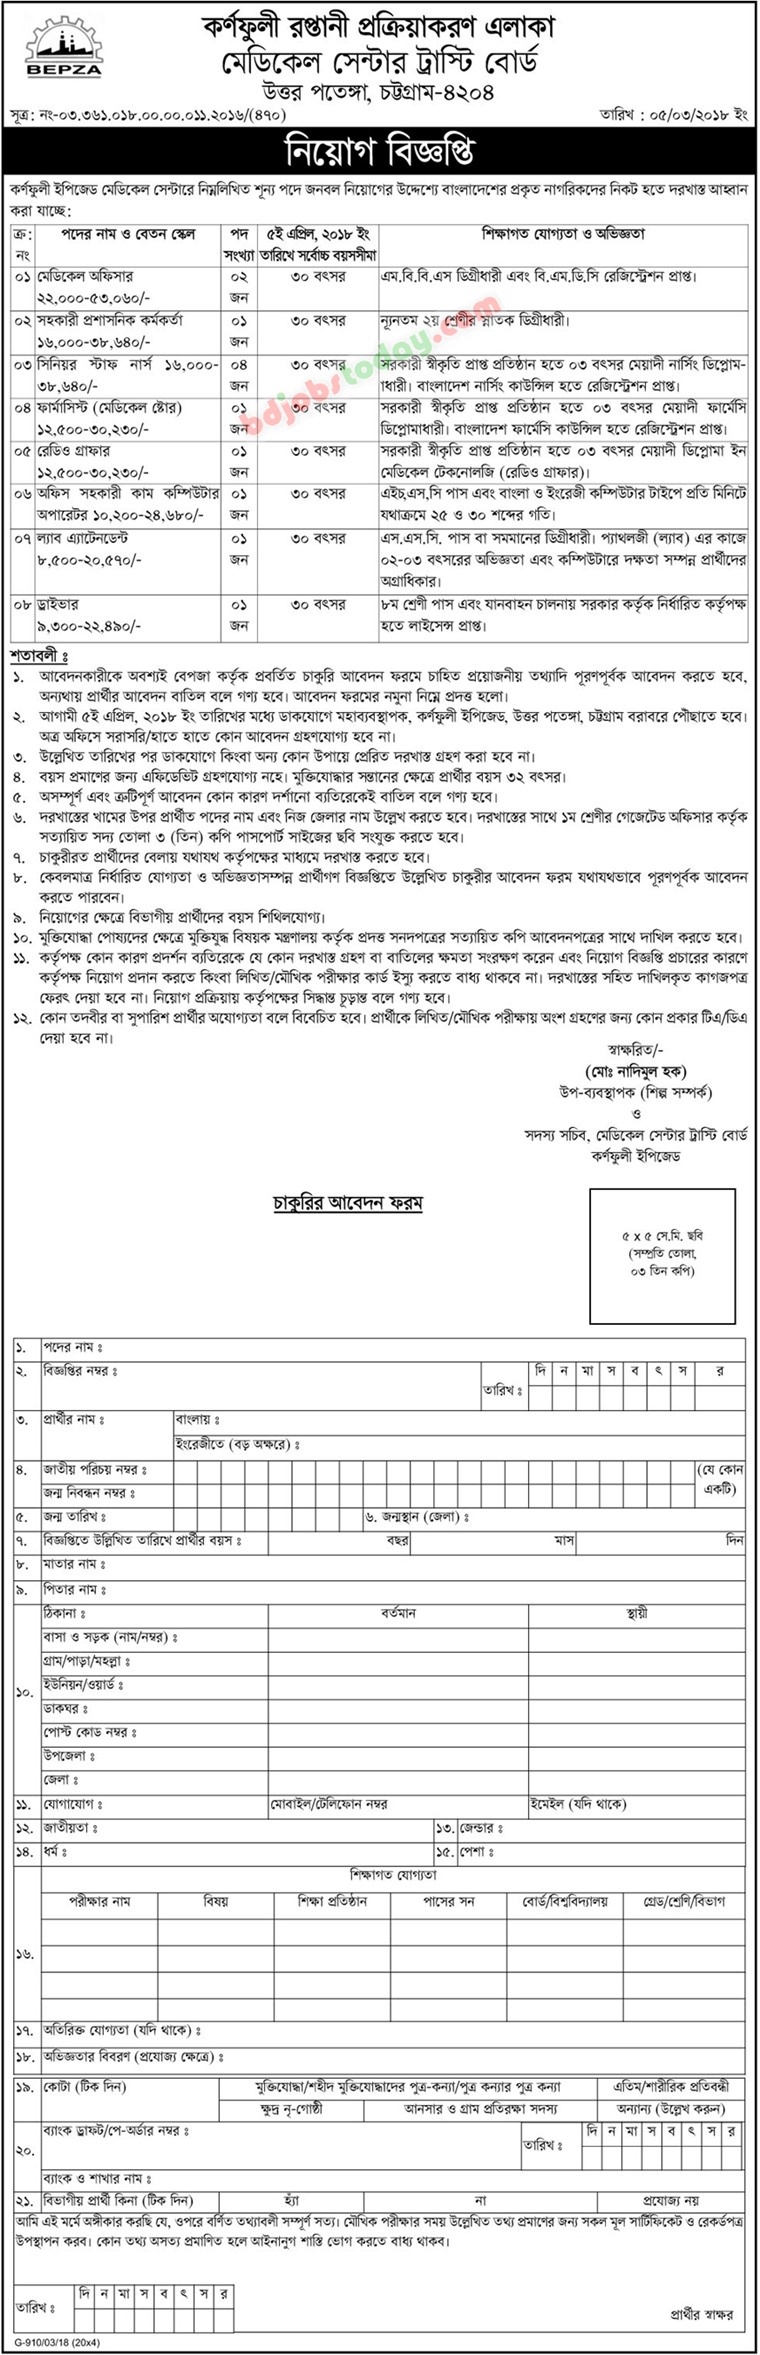 Karnaphuli EPZ Medical Centre jobs